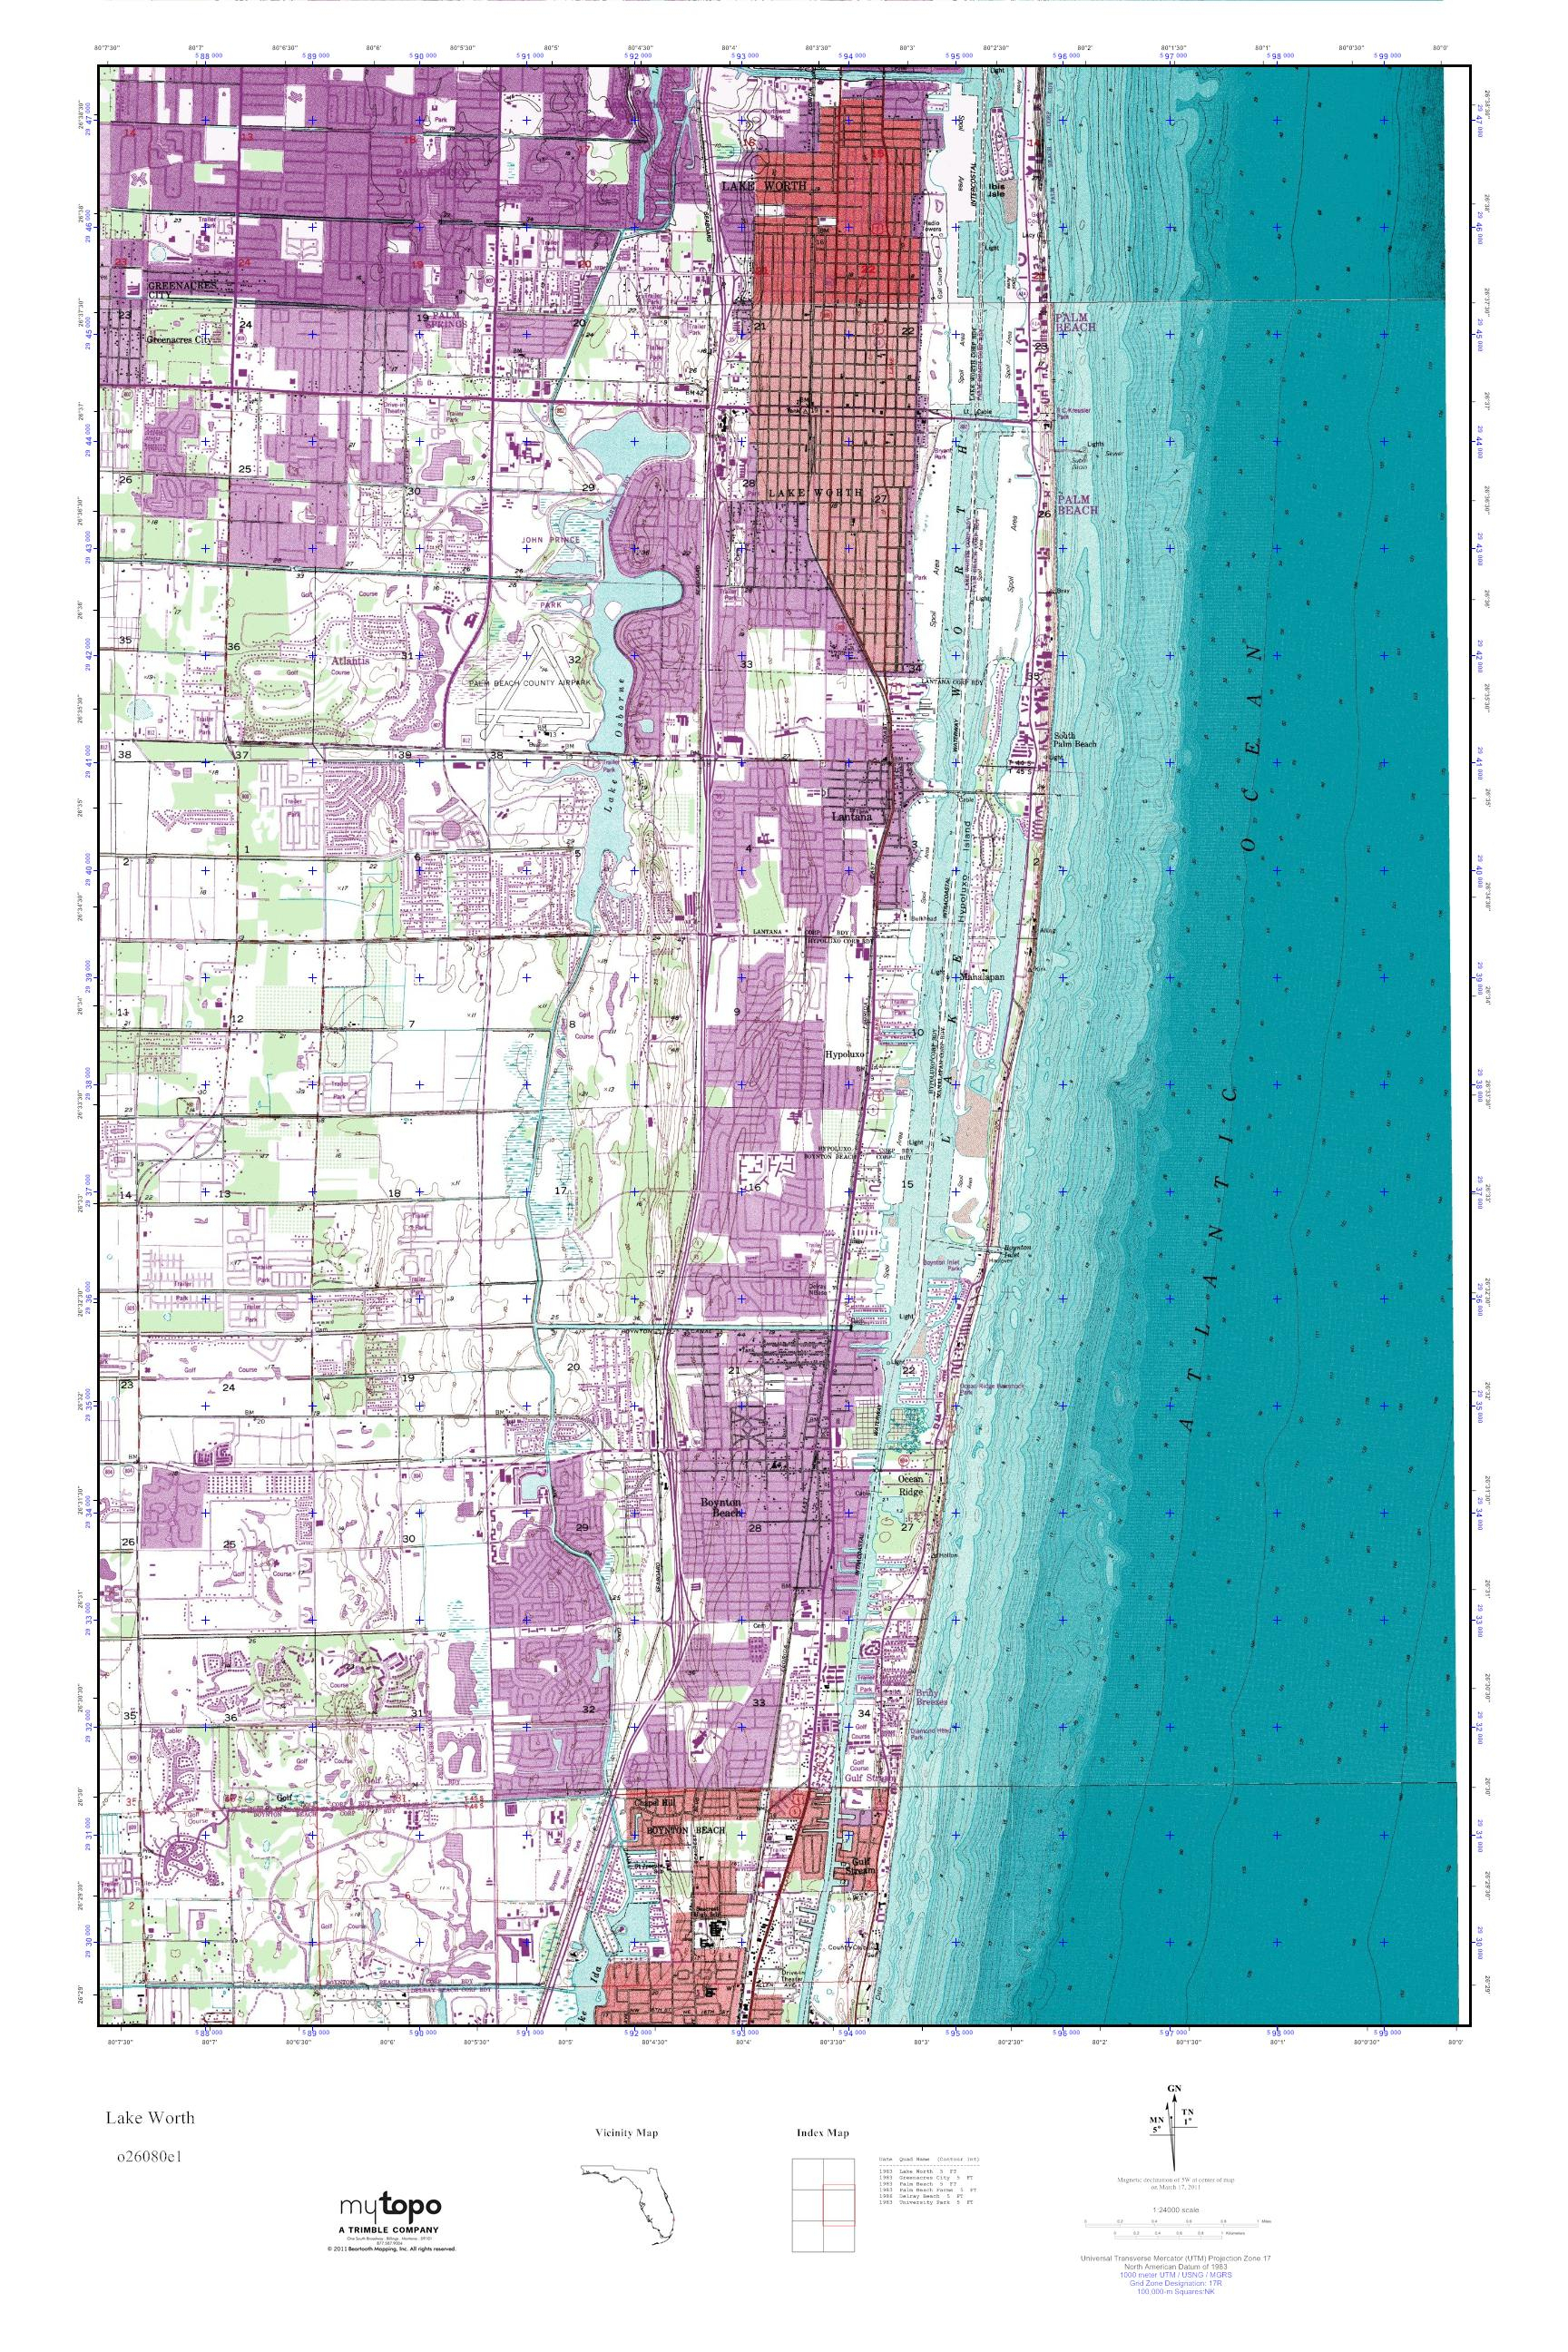 Mytopo Lake Worth, Florida Usgs Quad Topo Map - Lake Worth Florida Map